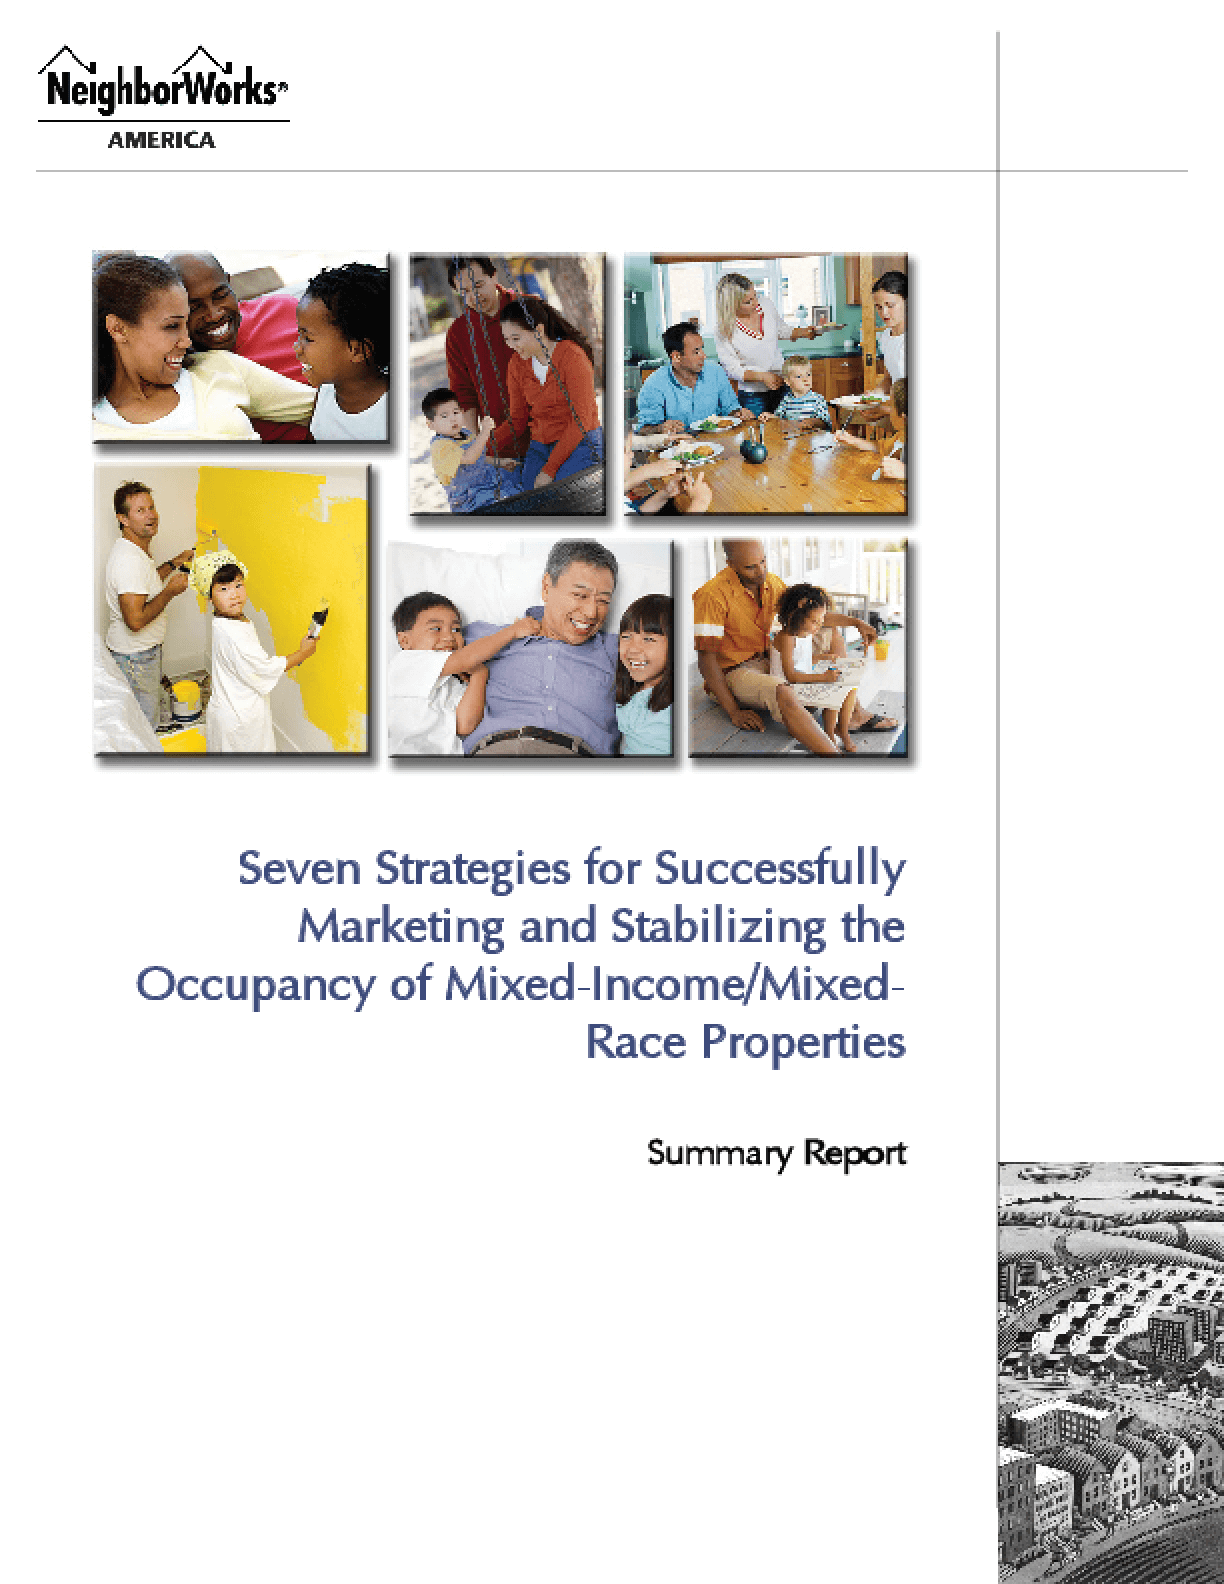 Seven Strategies for Successfully Marketing and Stabilizing the Occupancy of Mixed-Income/Mixed-Race Properties - Summary Report